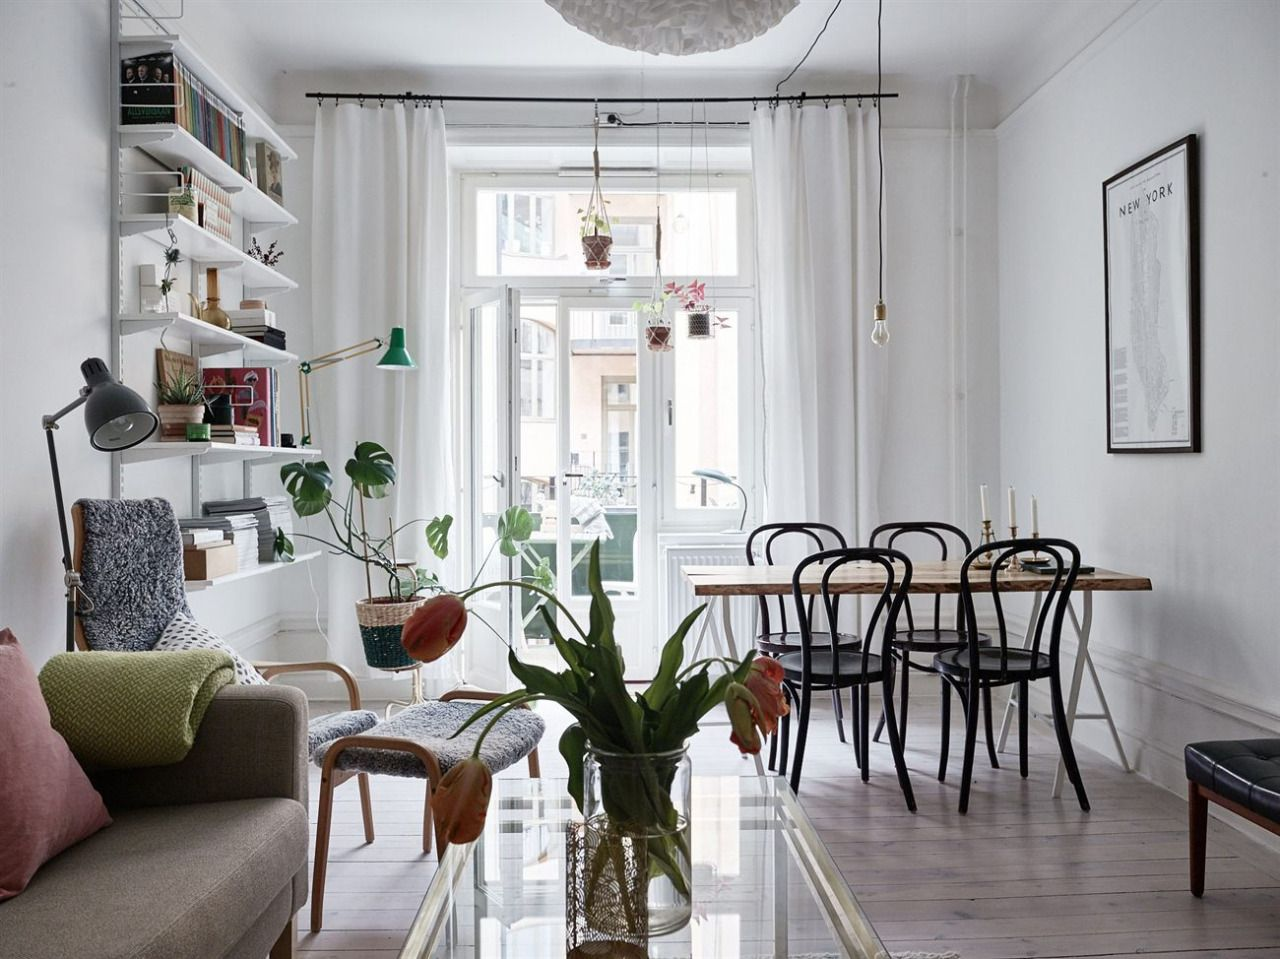 Small Space  The Scandinavian Way  Copparstad Interior Styling Brilliant Living Room Design For Small Spaces Inspiration